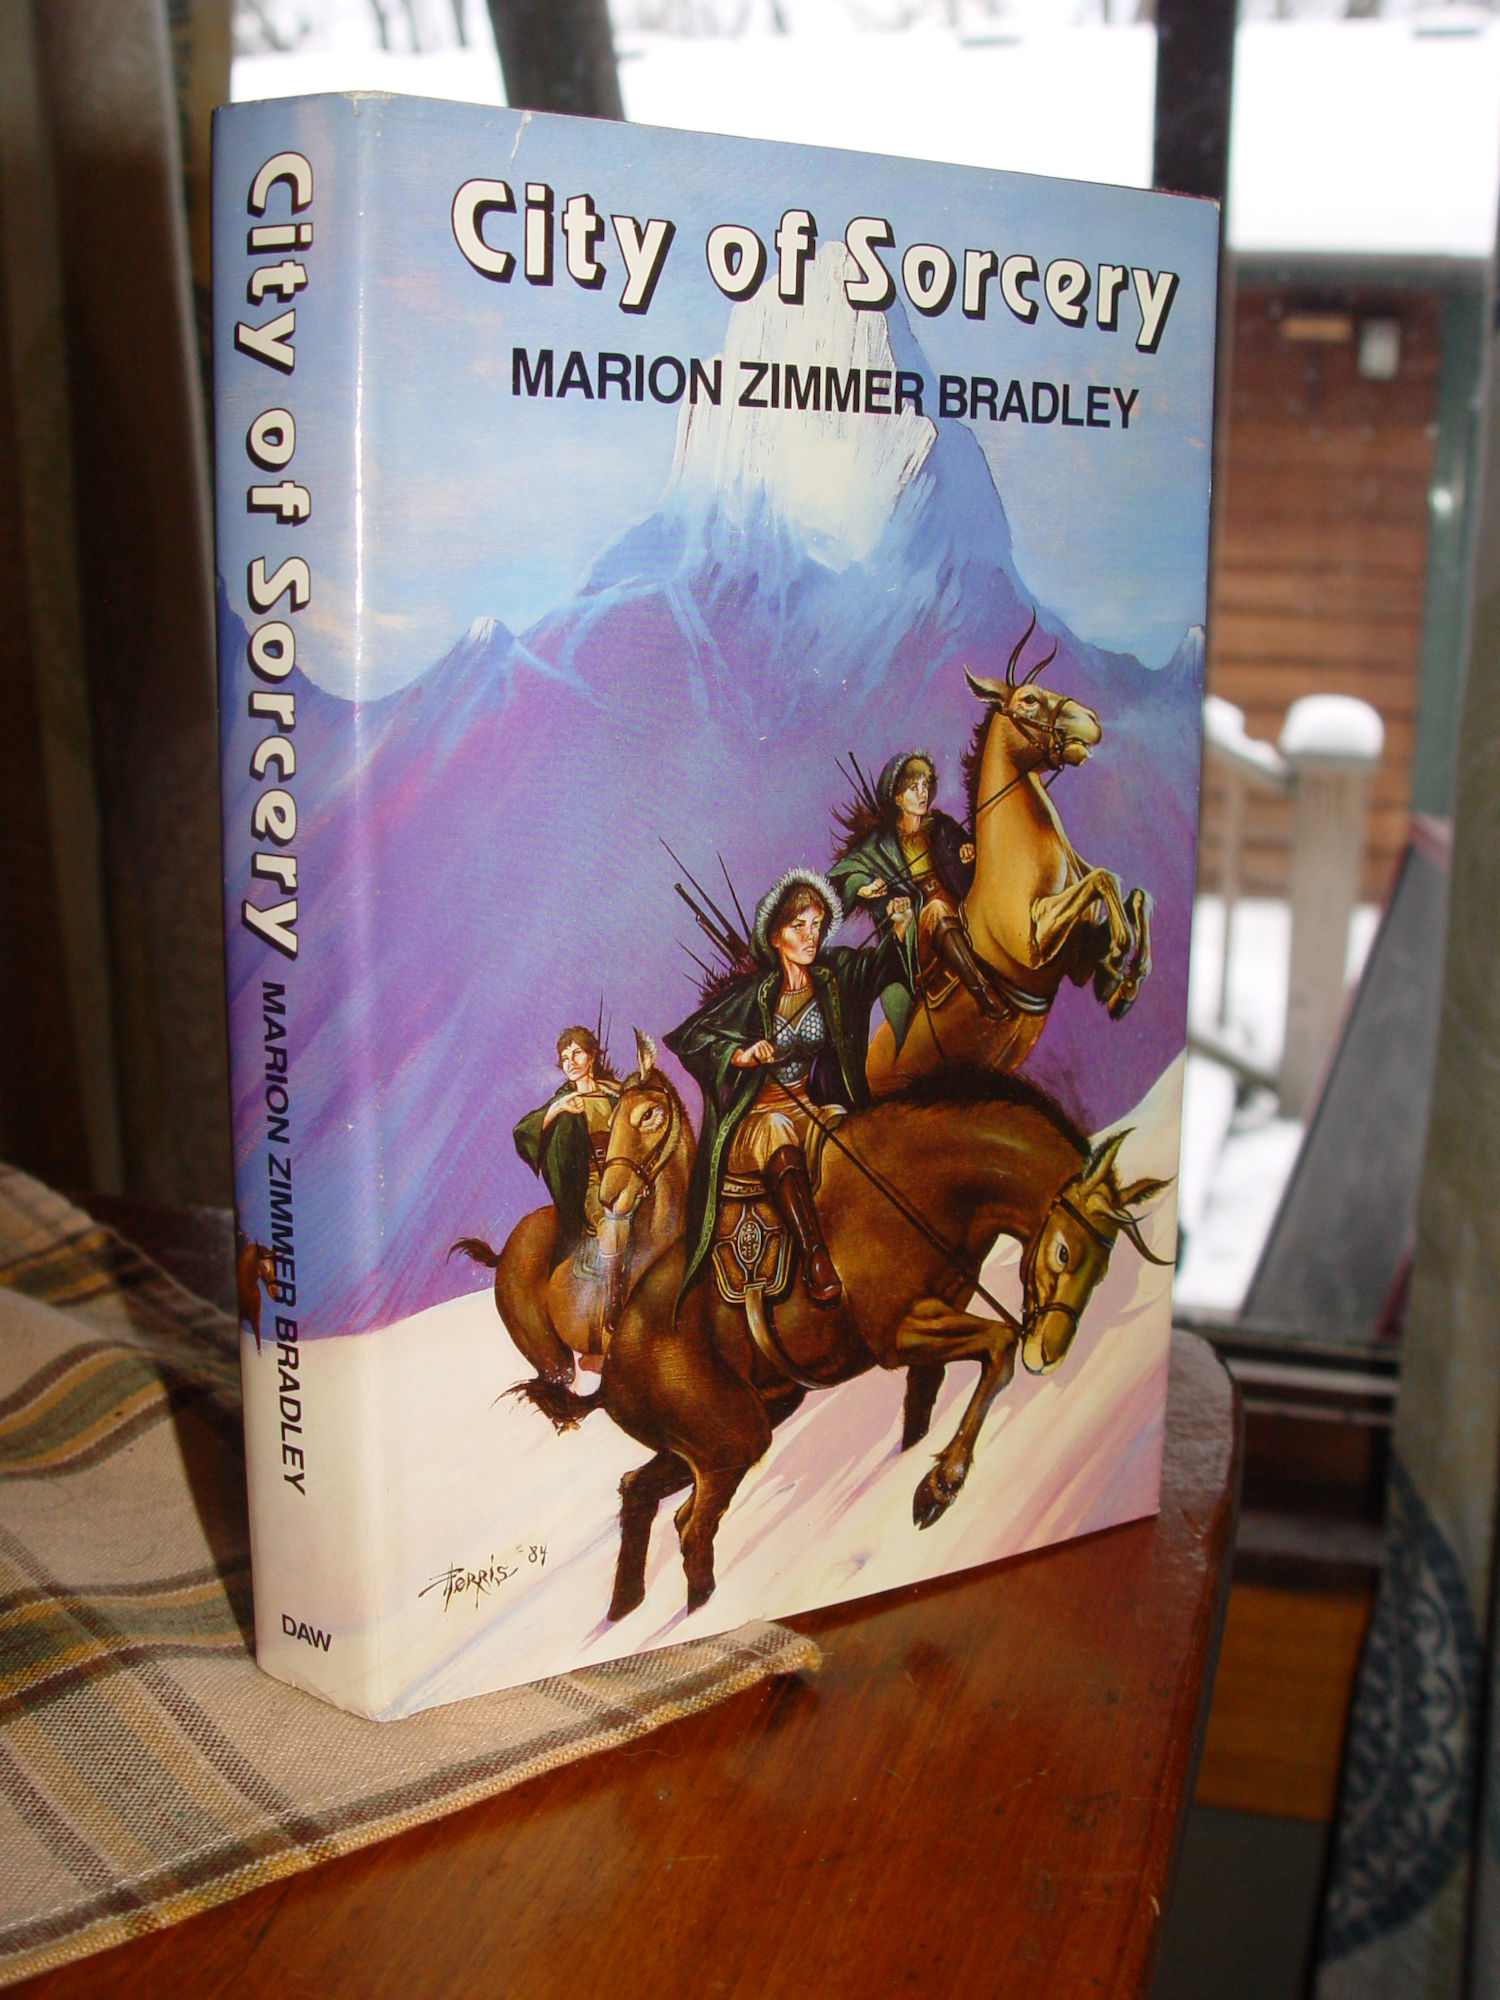 City Of Sorcery By Marion                                         Zimmer Bradley 1984 Hb Bradley                                         Book Club Edition, First                                         Printing